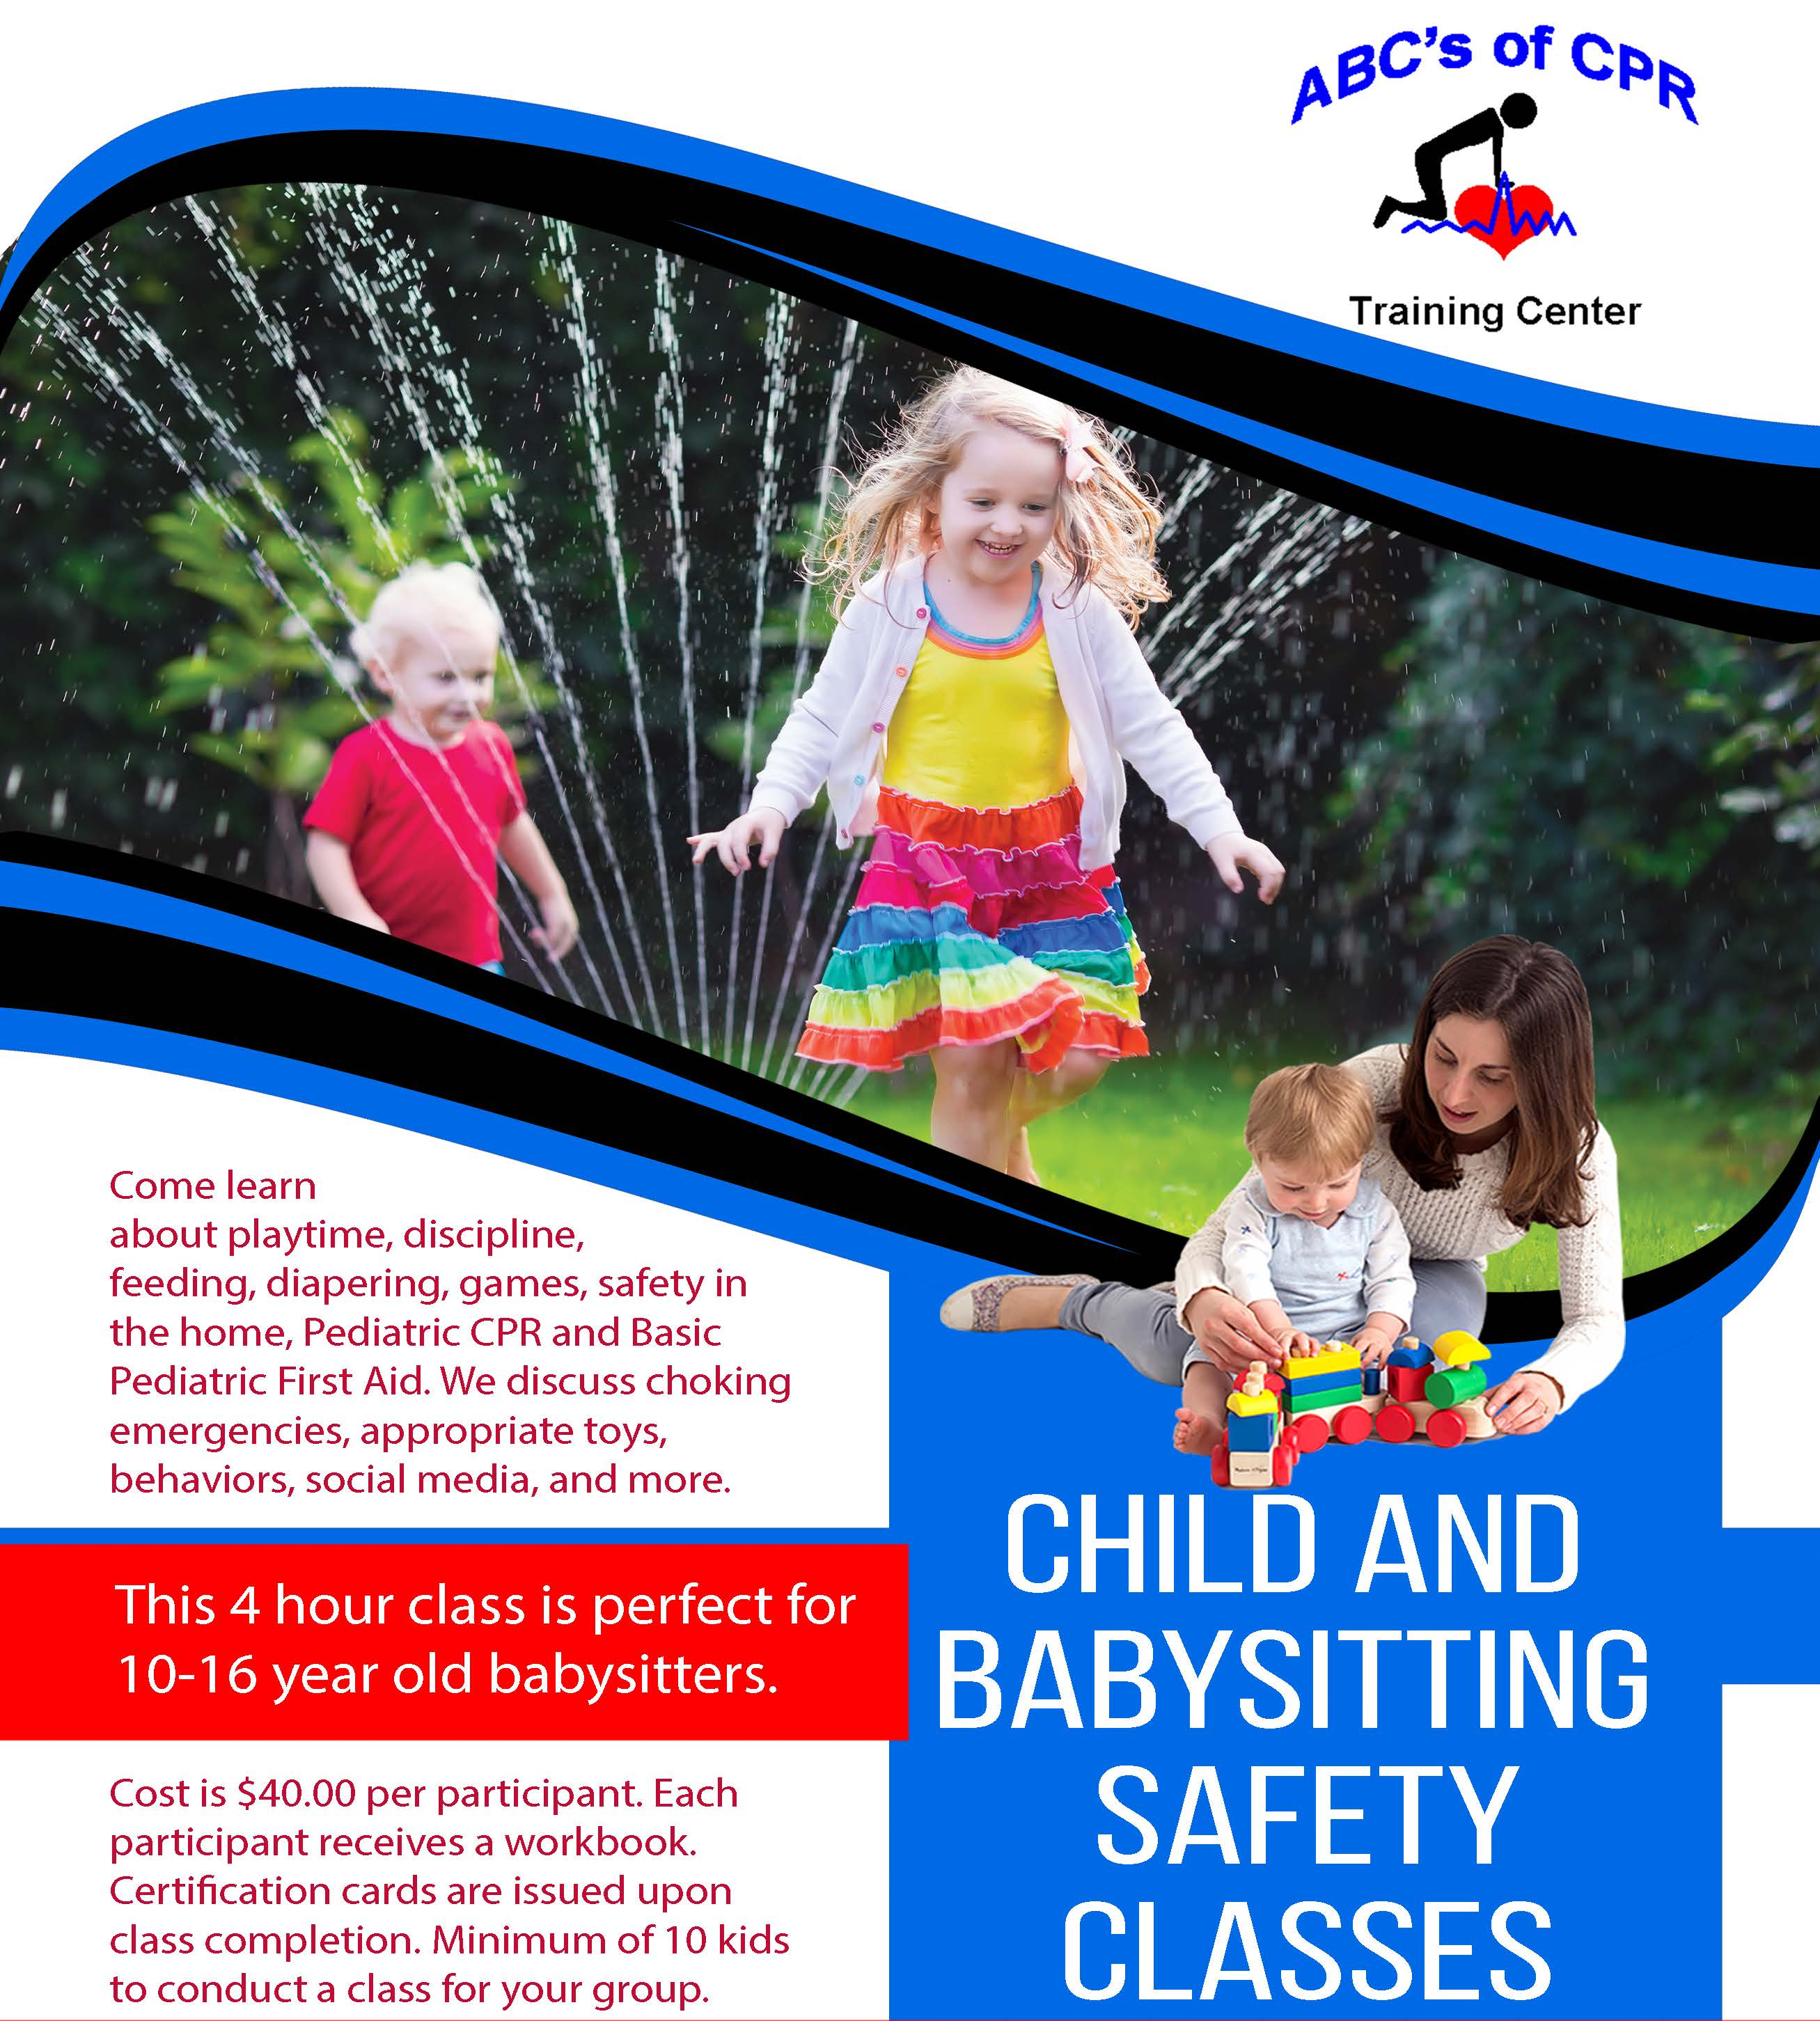 Child and Babysitting Safety Flyer (1)